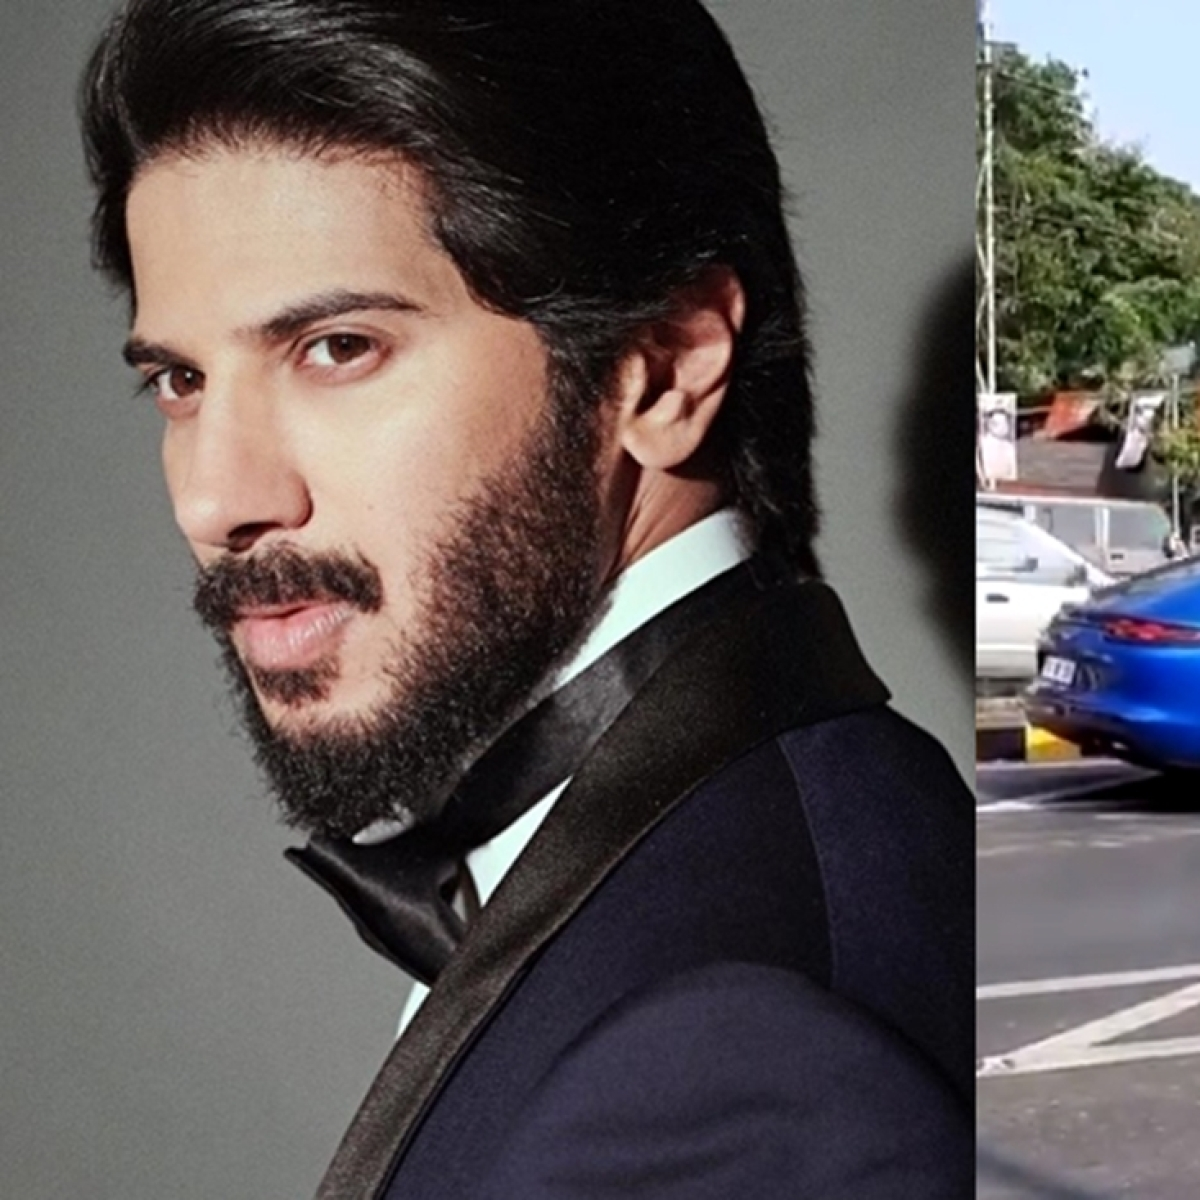 Dulquer Salmaan stopped by cops for driving his Rs 2.43 cr Porsche Panamera on the wrong side of the road